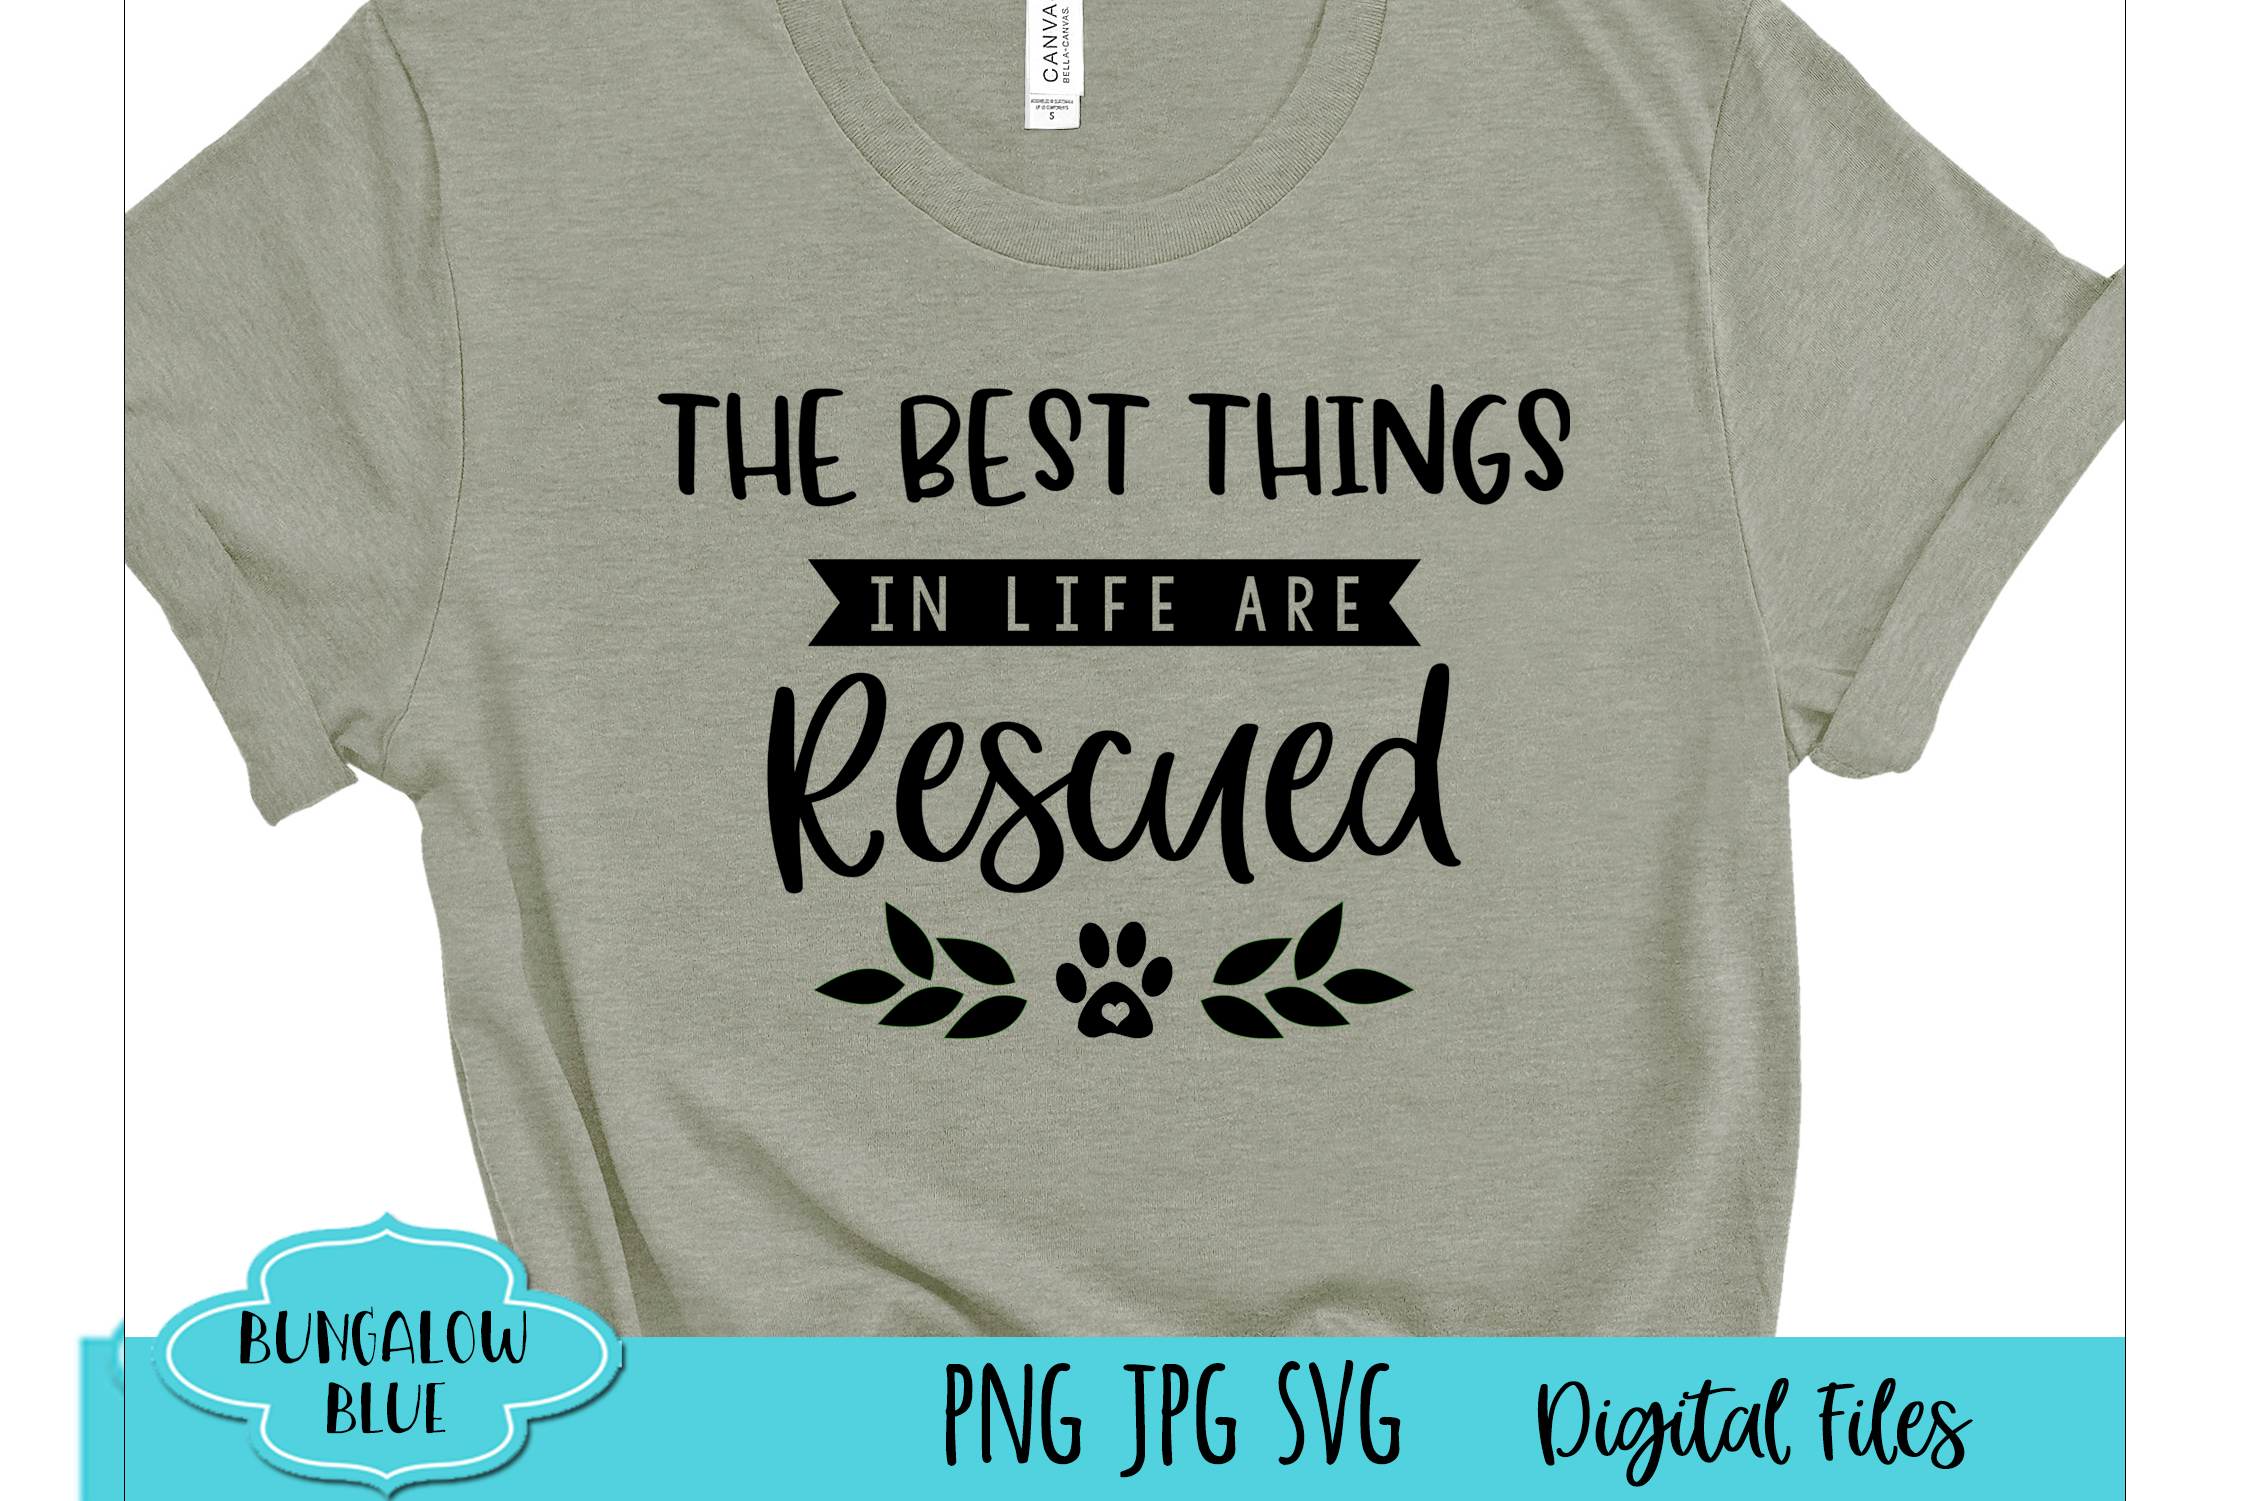 Best Things in Life are Rescued Laurel Digital Download example image 1